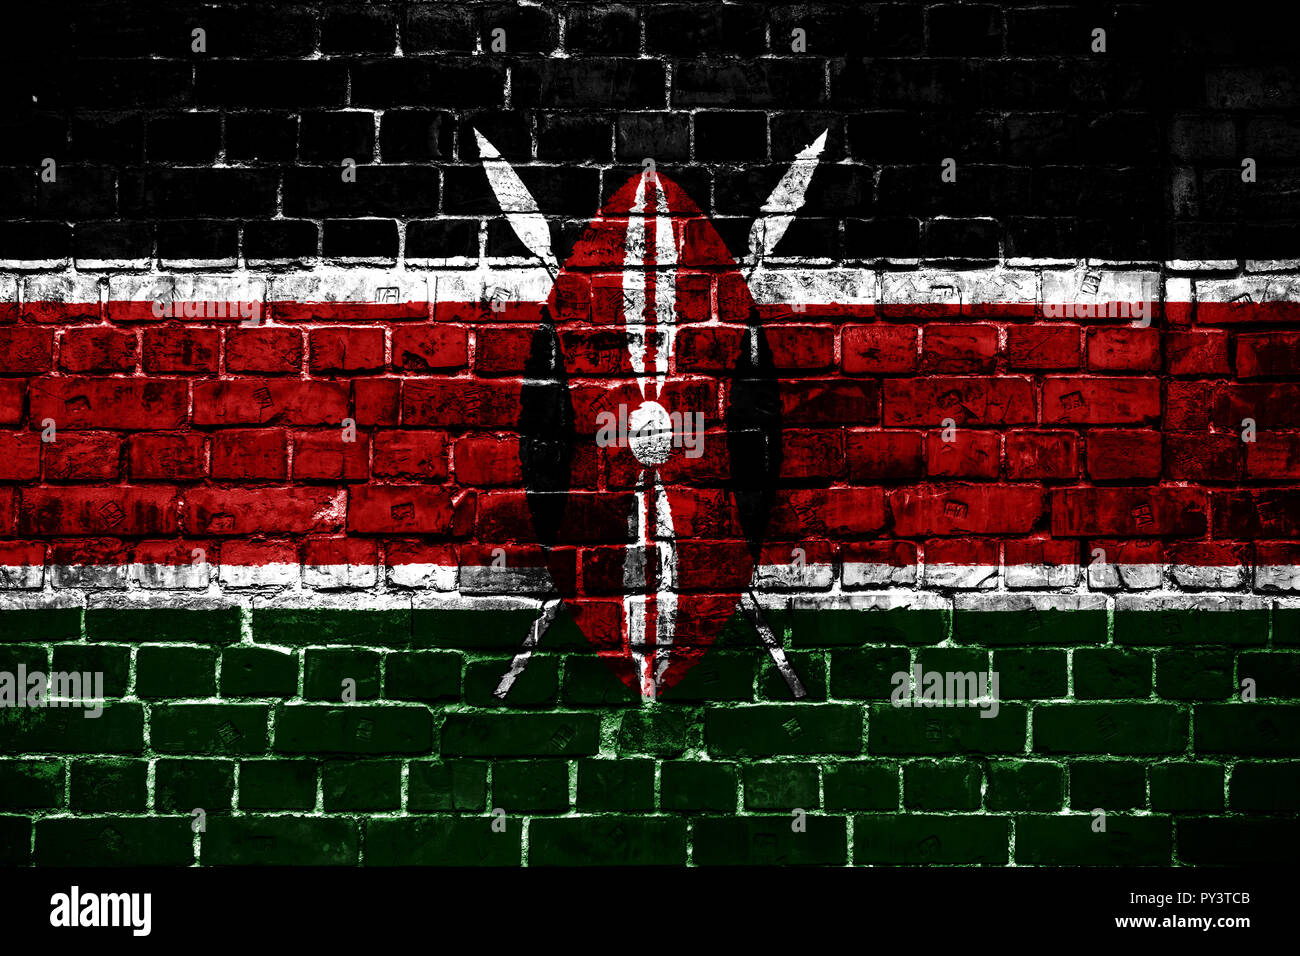 National Flag Of Kenya On A Brick Background Concept Image For Kenya Language People And Culture Stock Photo Alamy